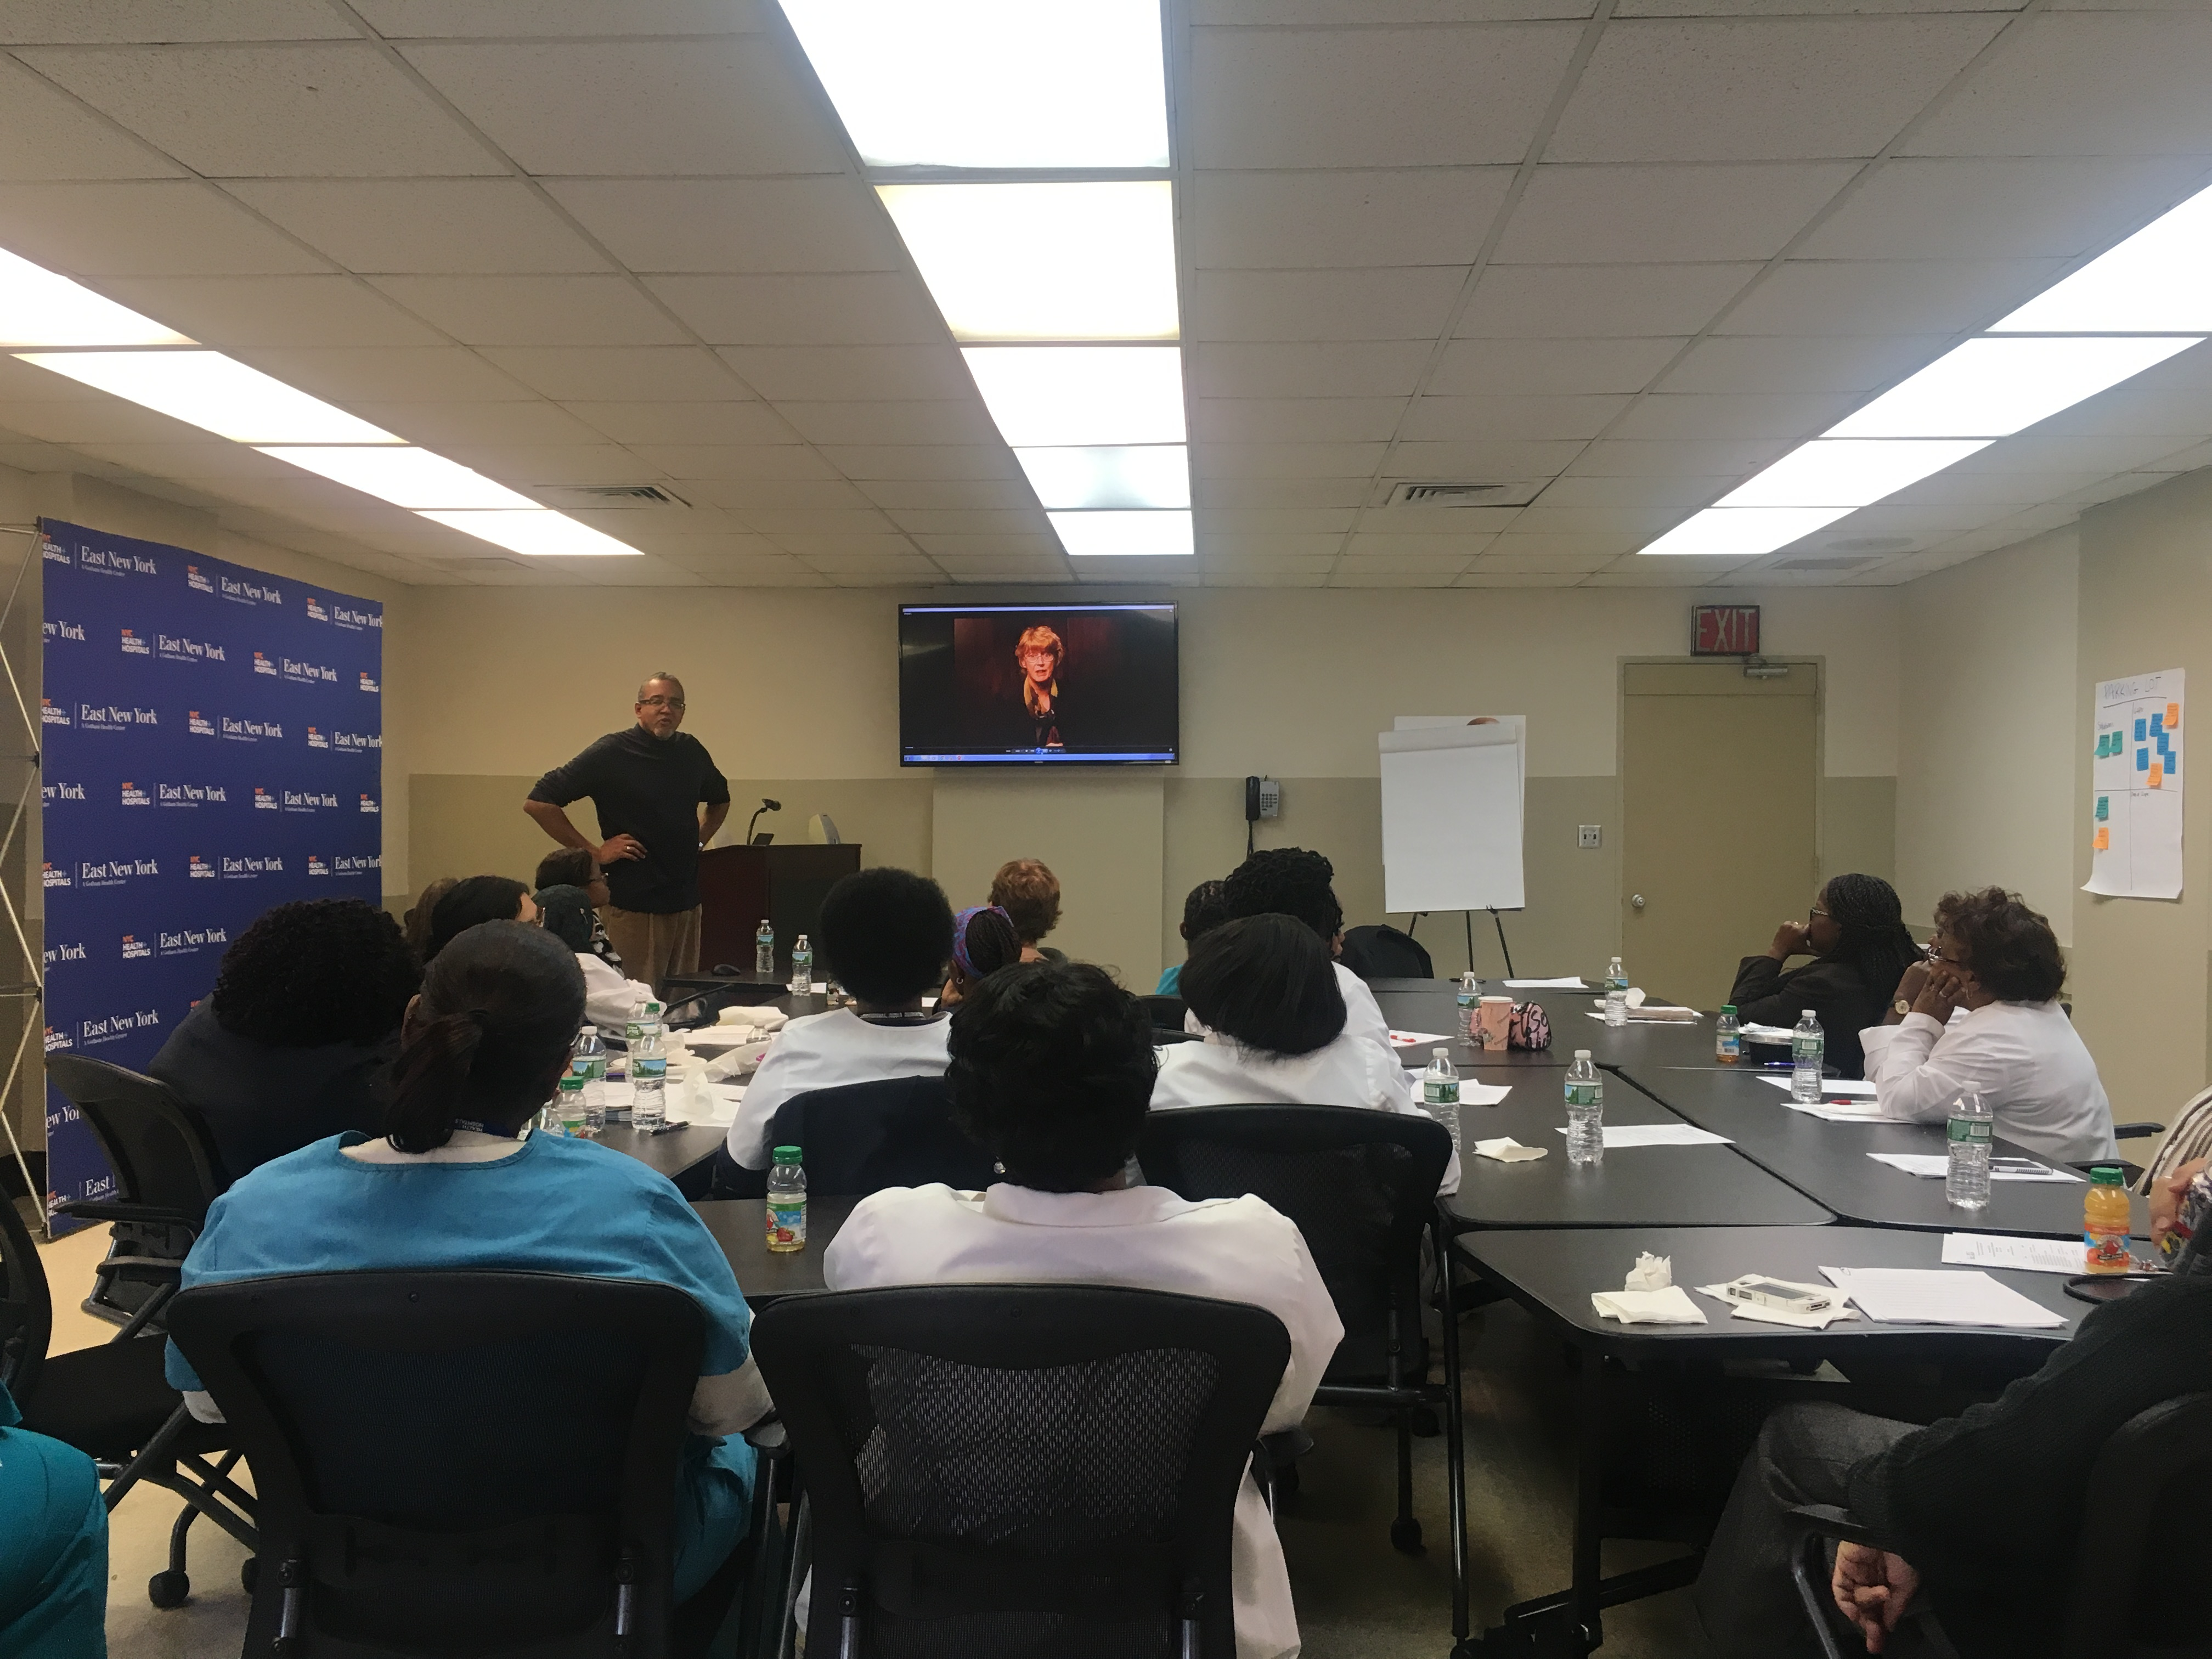 Dr. Randall Brown, Director and Co-author of PACE, leads a session at NYC Health + Hospitals/East New York